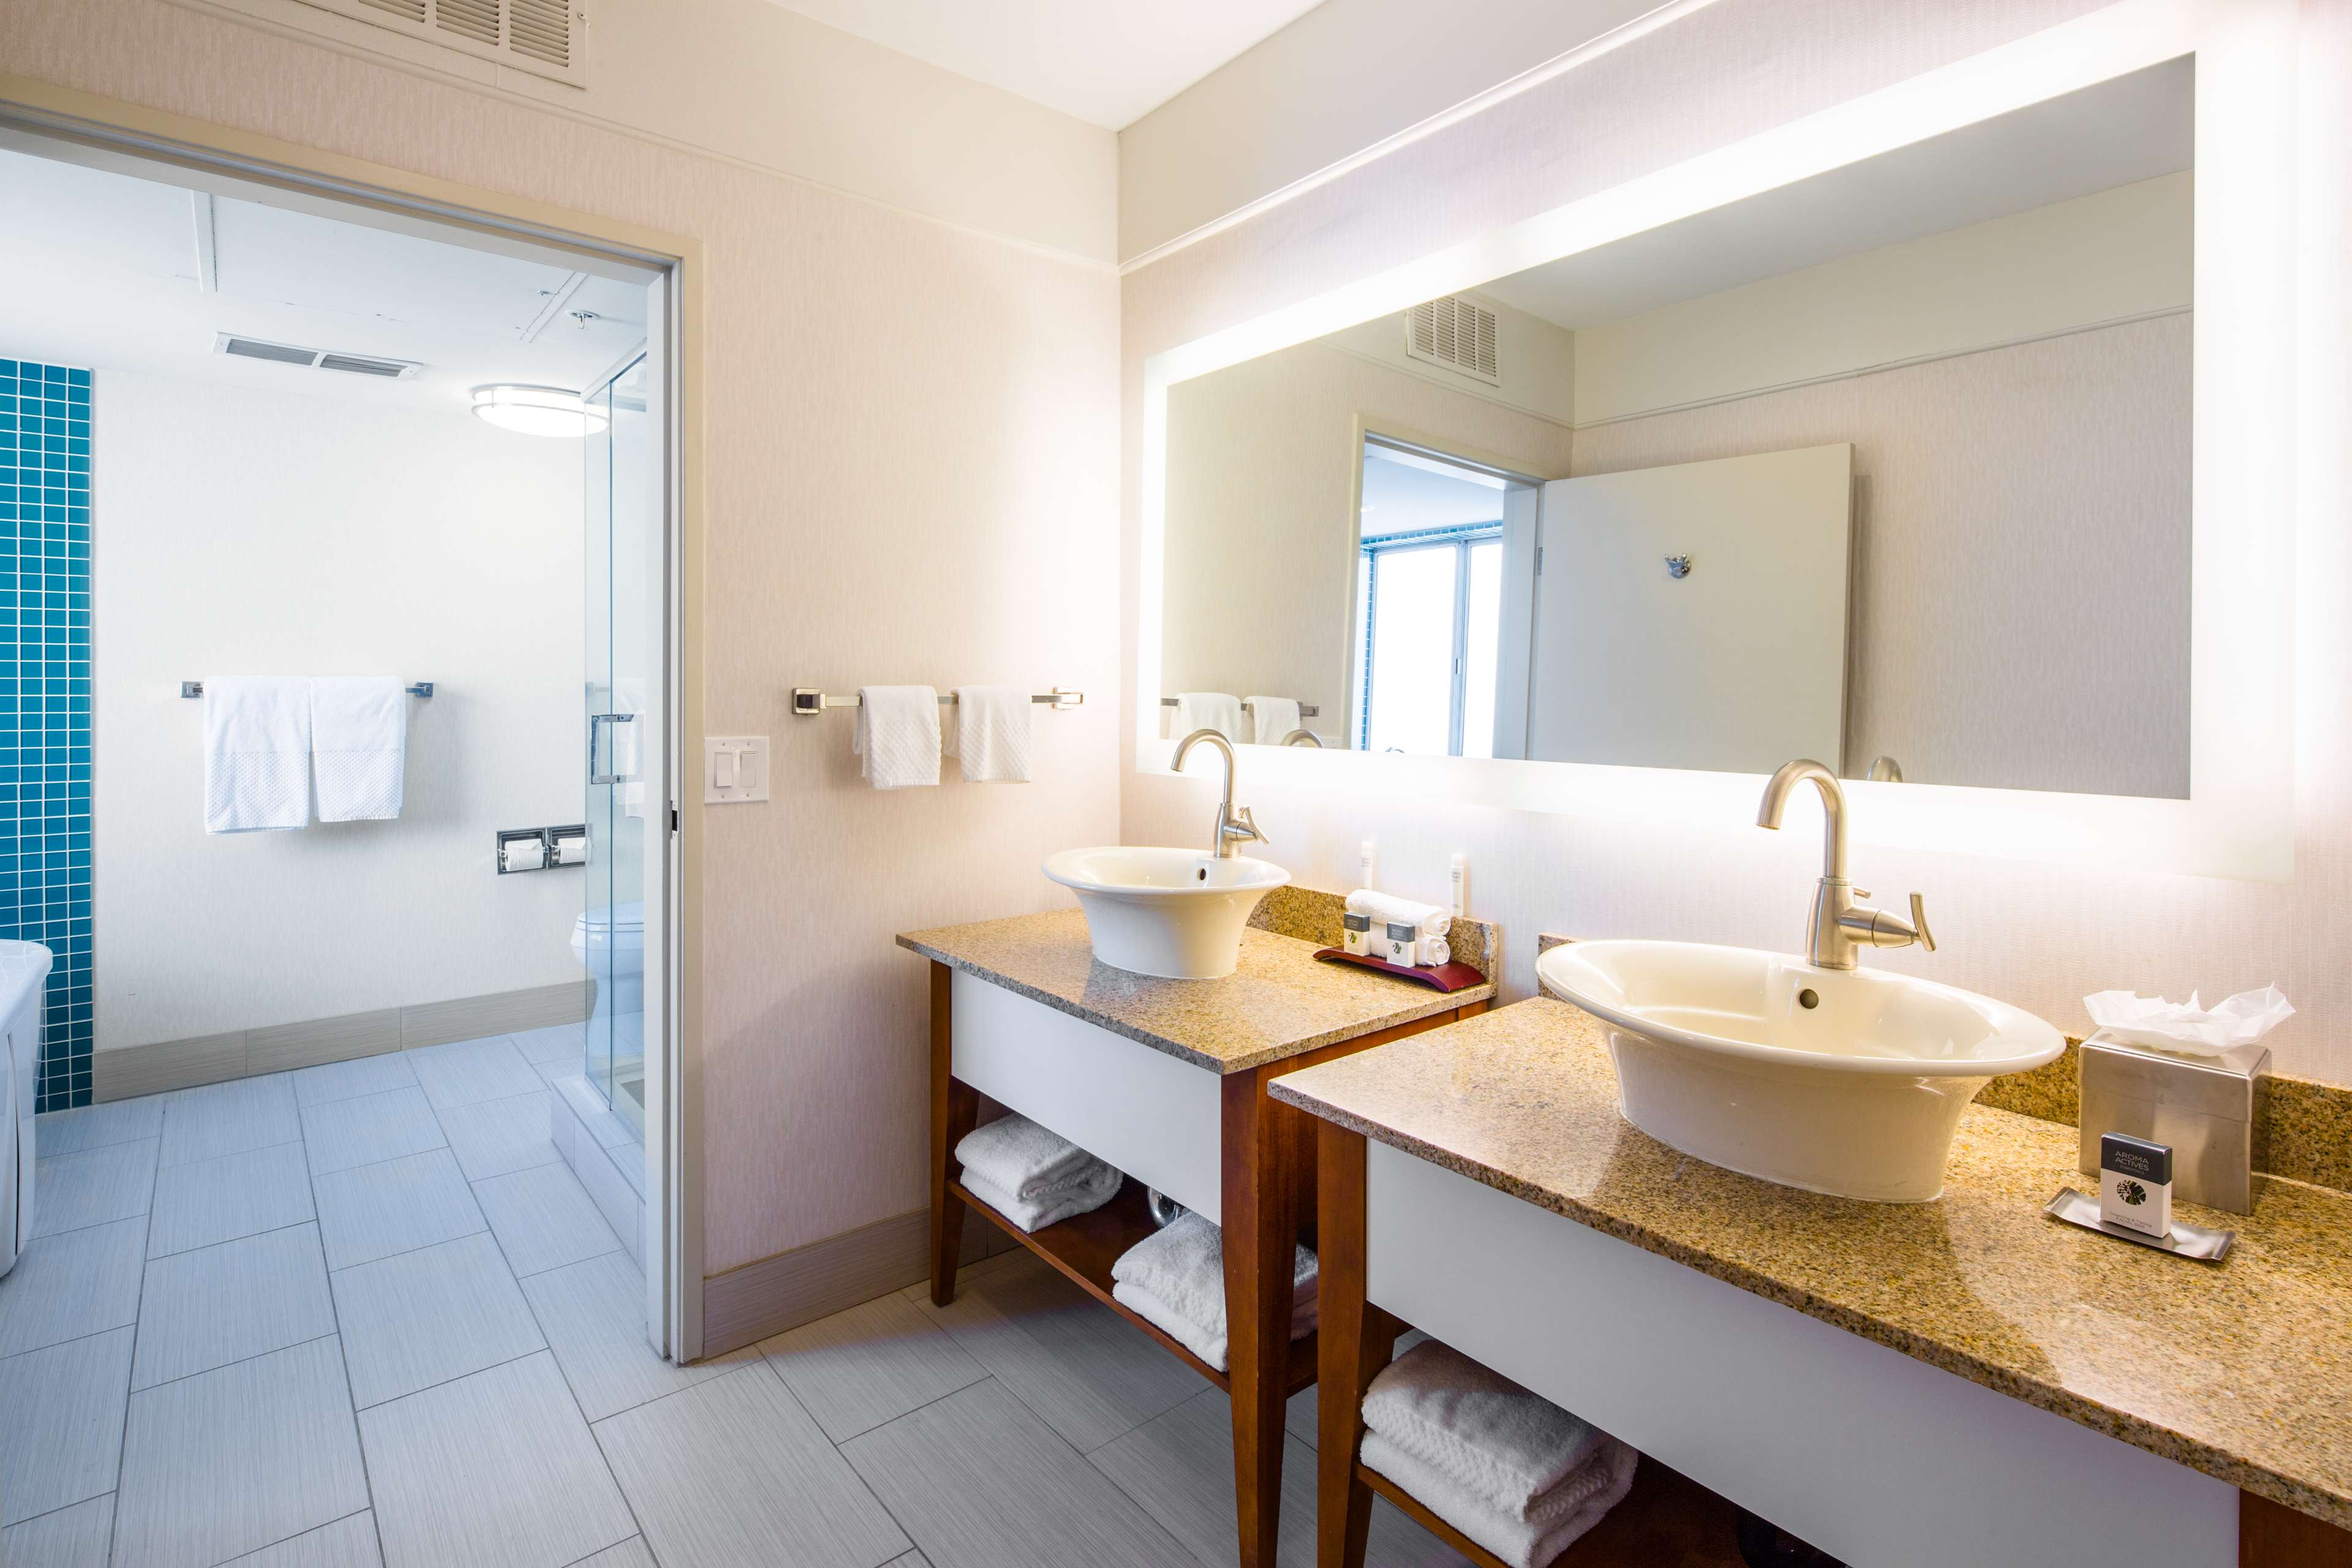 DoubleTree Suites by Hilton Hotel Doheny Beach - Dana Point image 13